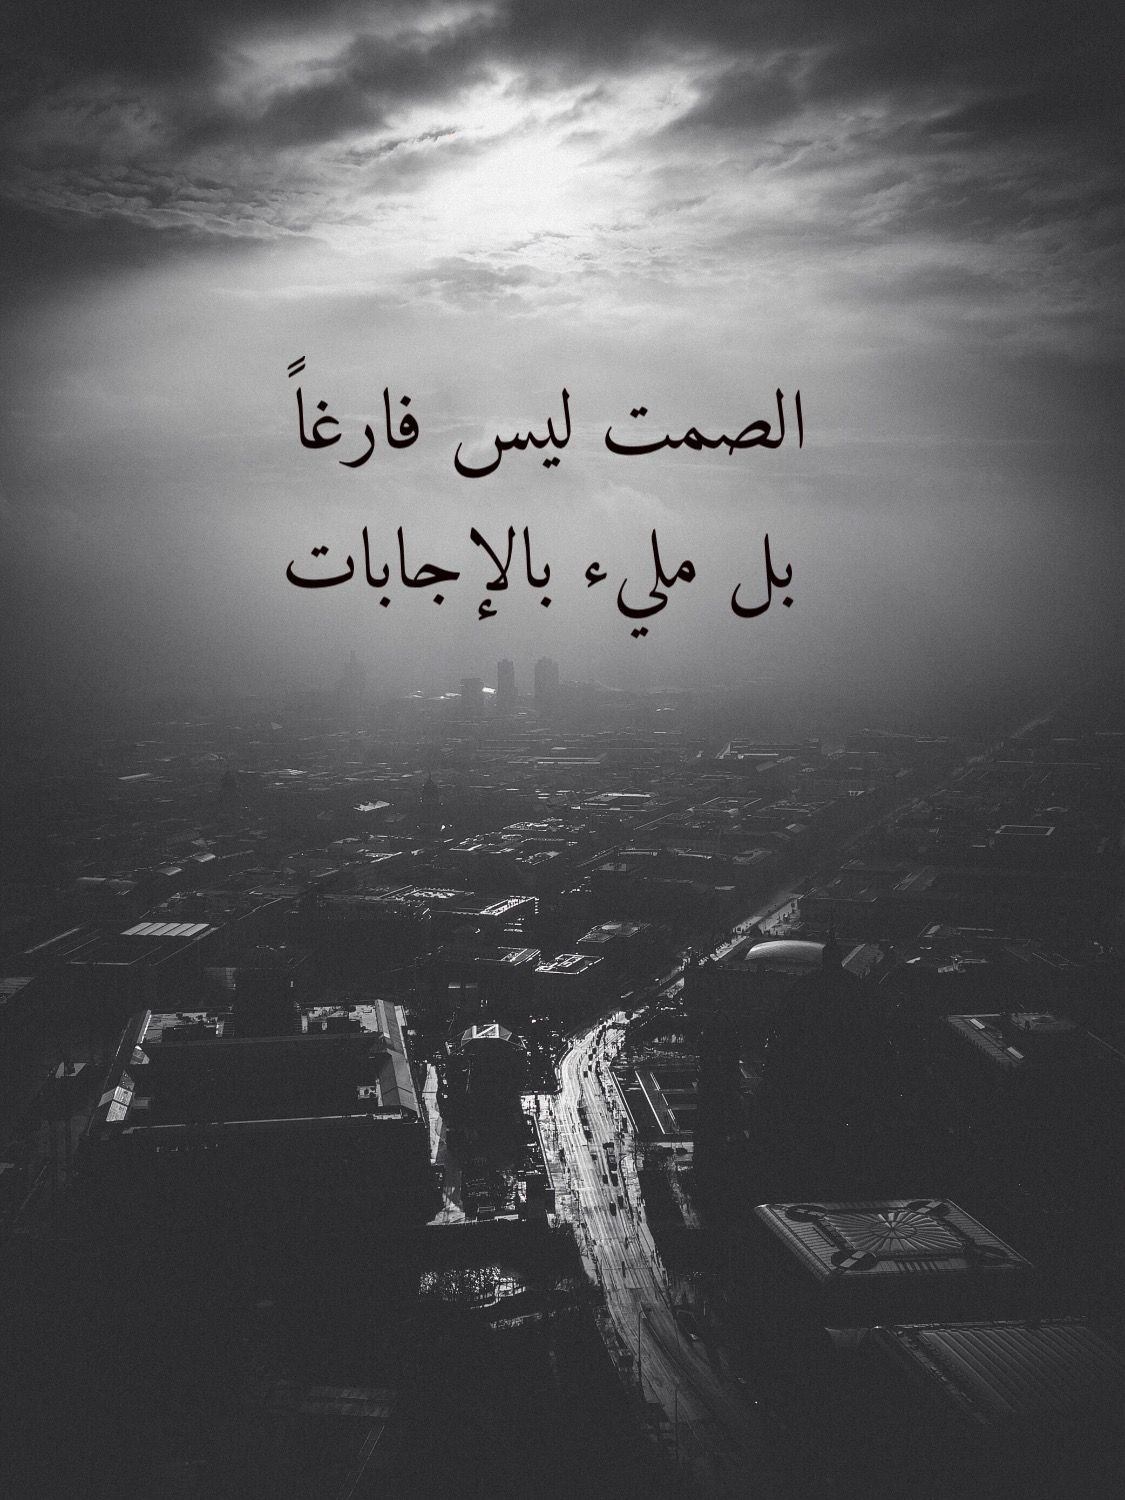 Pin By Mrb On Arabic Quotes Beautiful Arabic Words Arabic Quotes Words Quotes